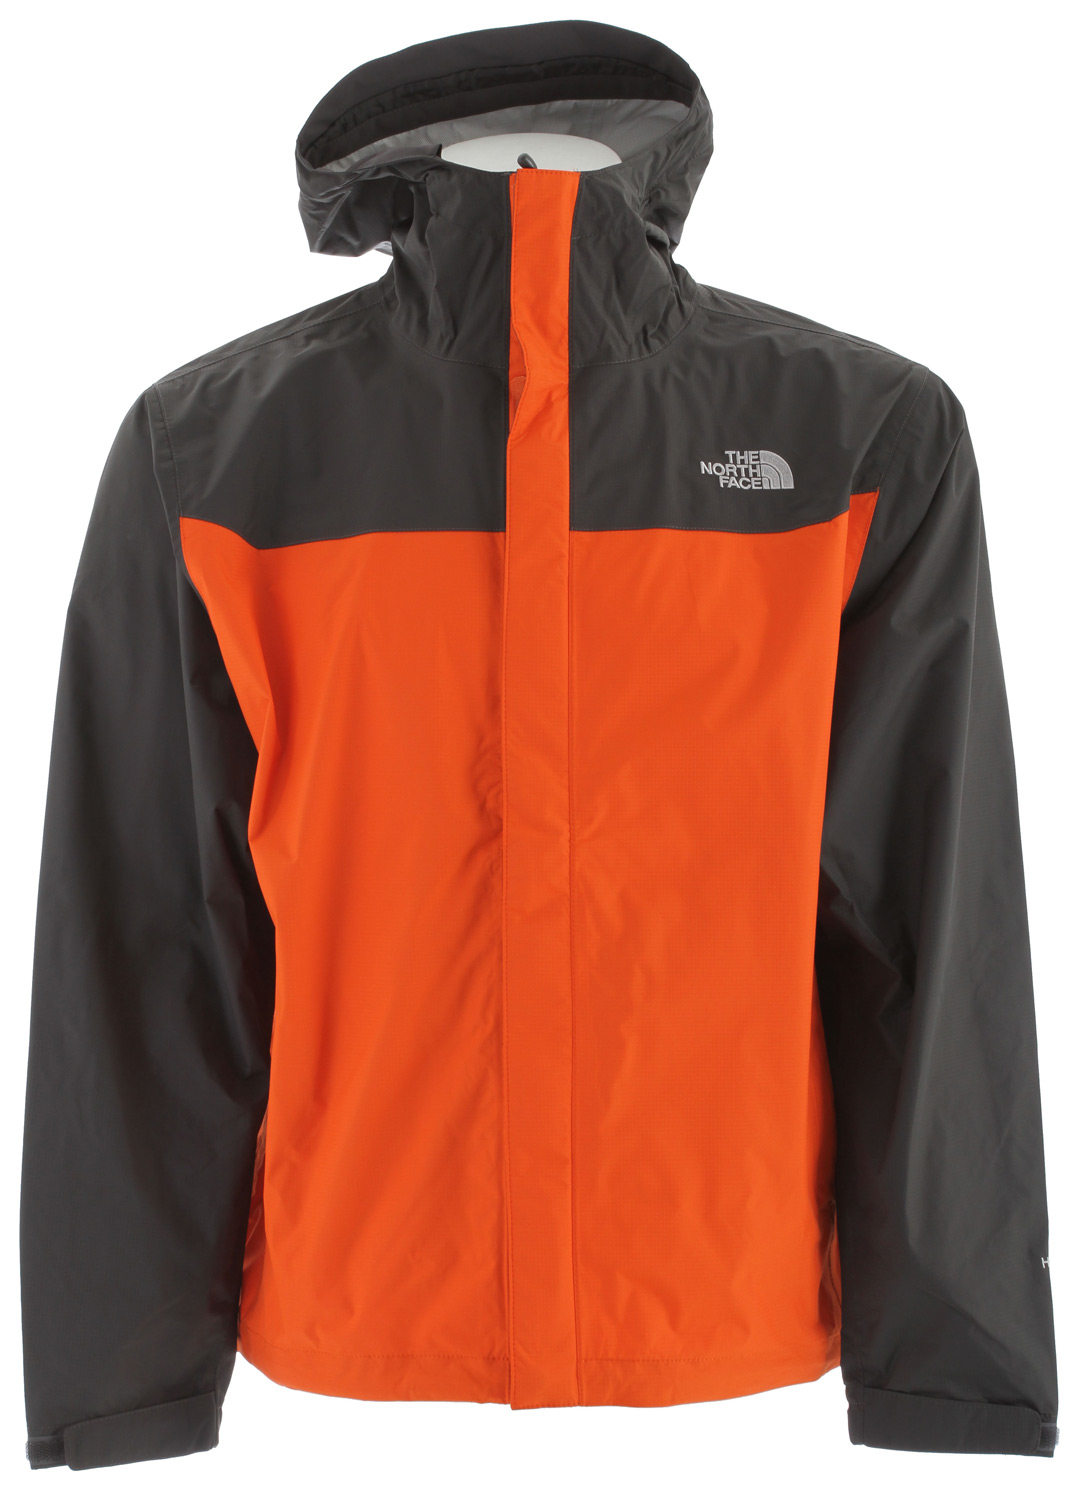 Editors of Backpacker Magazine awarded this jacket recognition for its eco-conscious construction. Made of an environmentally friendly membrane, this waterproof, breathable outer layer with modern lines will protect you from rain year round. Features zippered underarm vents for maximum air flow, an attached adjustable hood with a drawcord, and a center front zip and Velcro closure. HyVent is a superior waterproof, breathable technology that uses a polyurethane (PU) coating for a multi-layer formula that provides waterproof protection, moisture permeability and durability. All of the HyVent variations are waterproof. Lab tested. Athlete approved. - $68.95